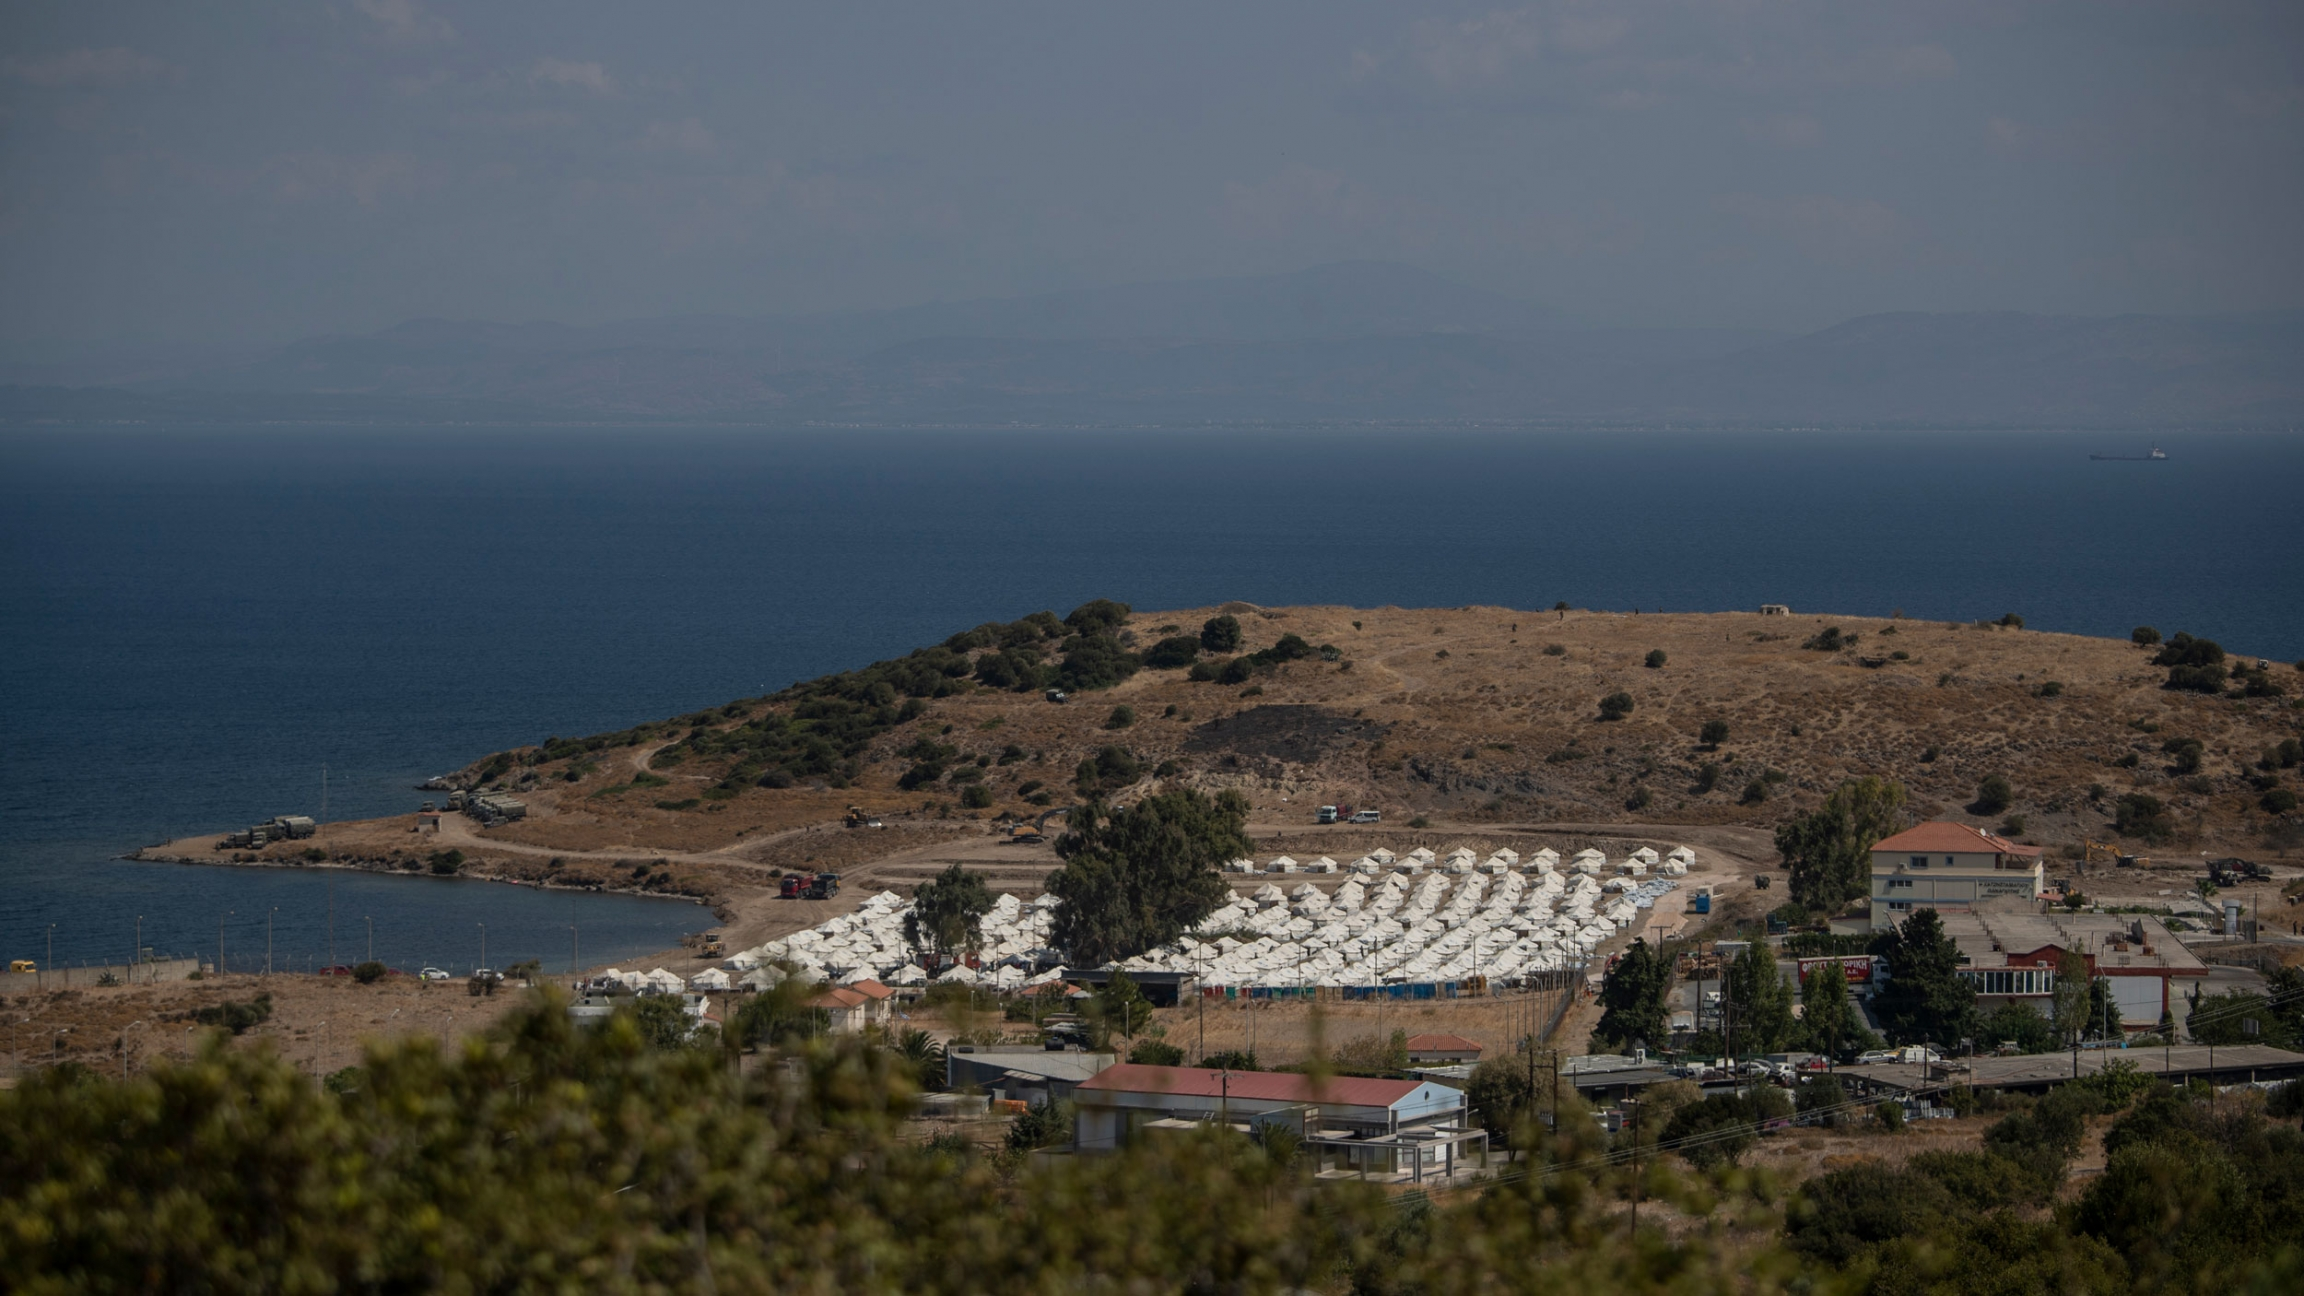 A view of a newly constructed camp for asylum-seekers with dozens of rows of white tents and the Aegan Sea in the distance.